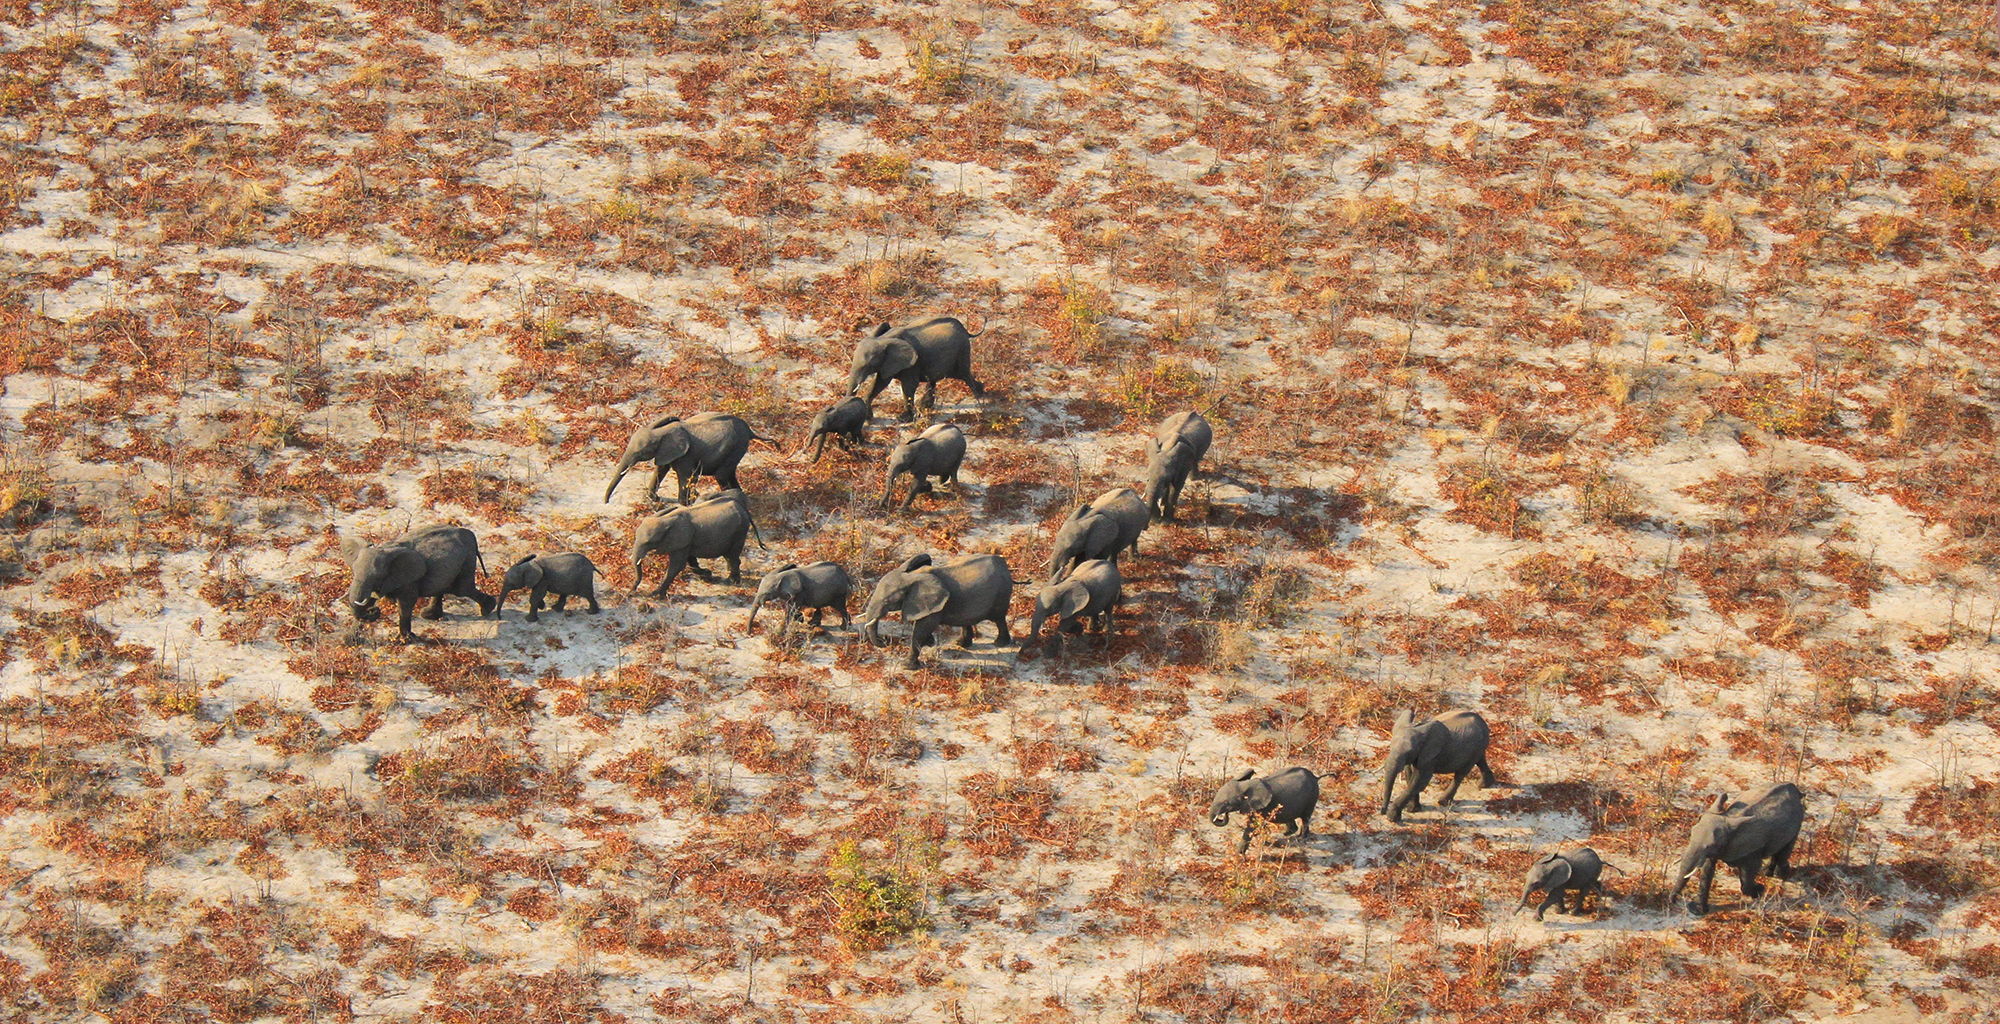 Ecoexist-Elephant-Herd-From-Above